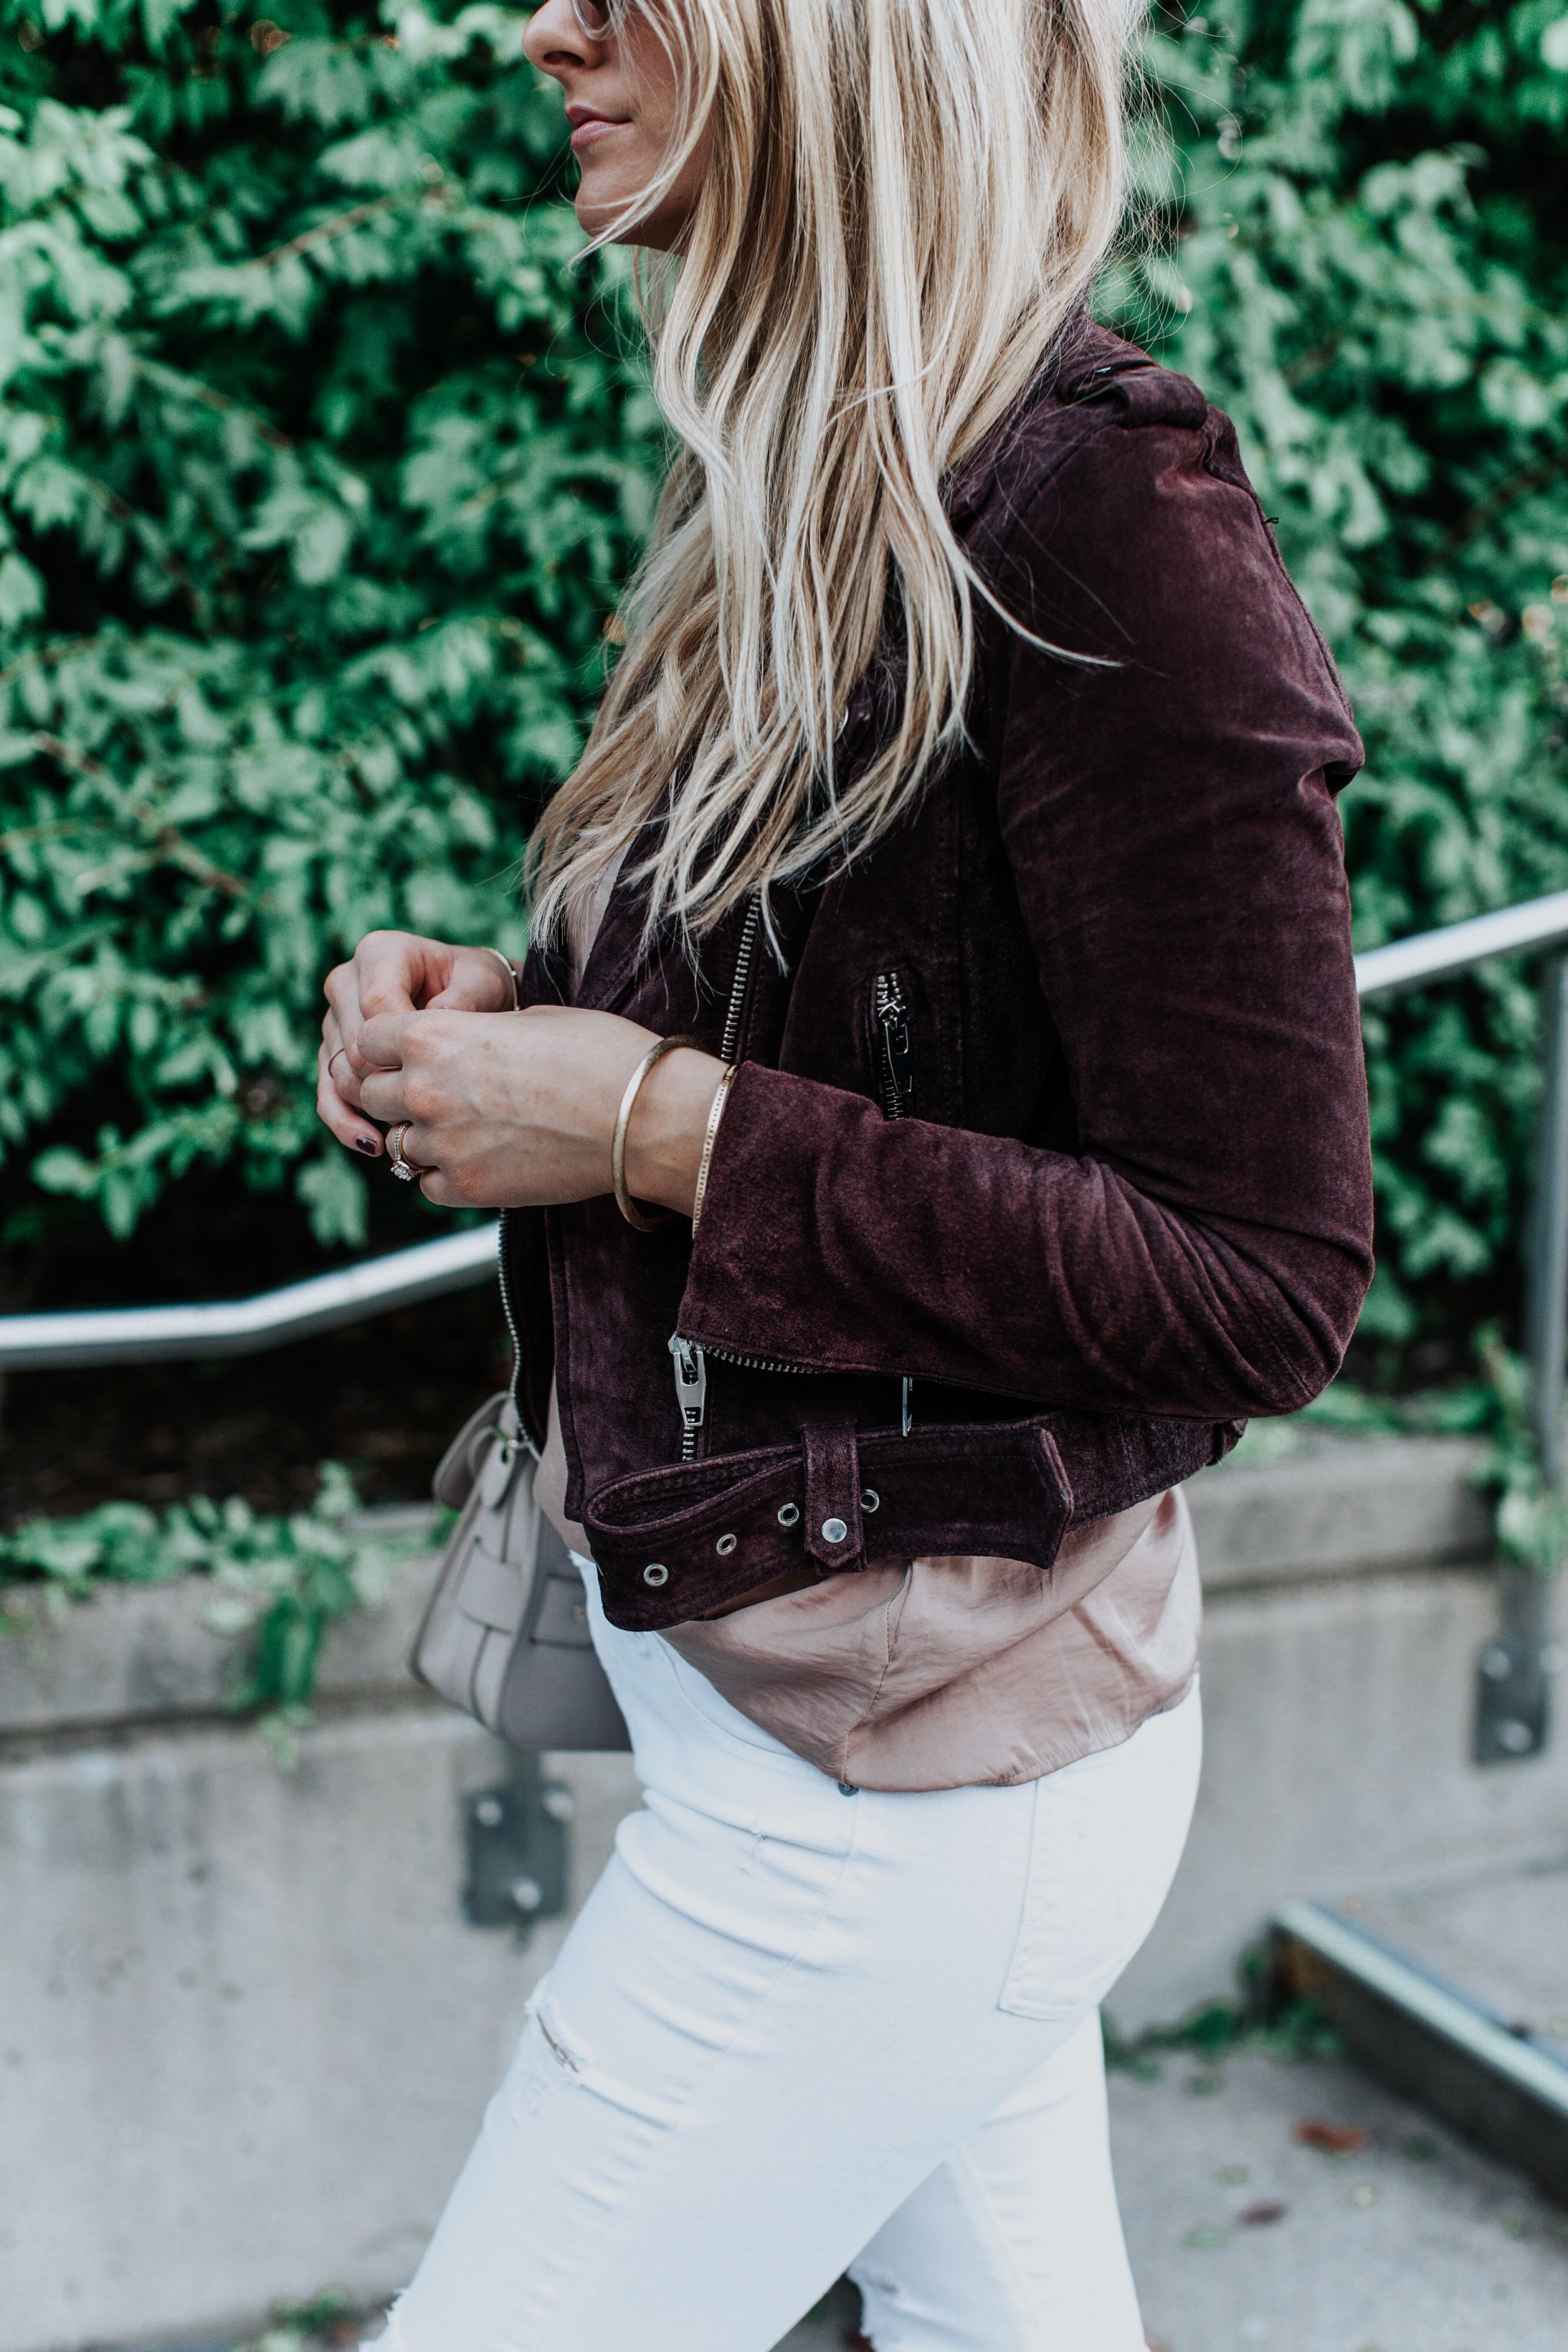 1 person, girl wearing plum suede jacket, fashion blogger blonde